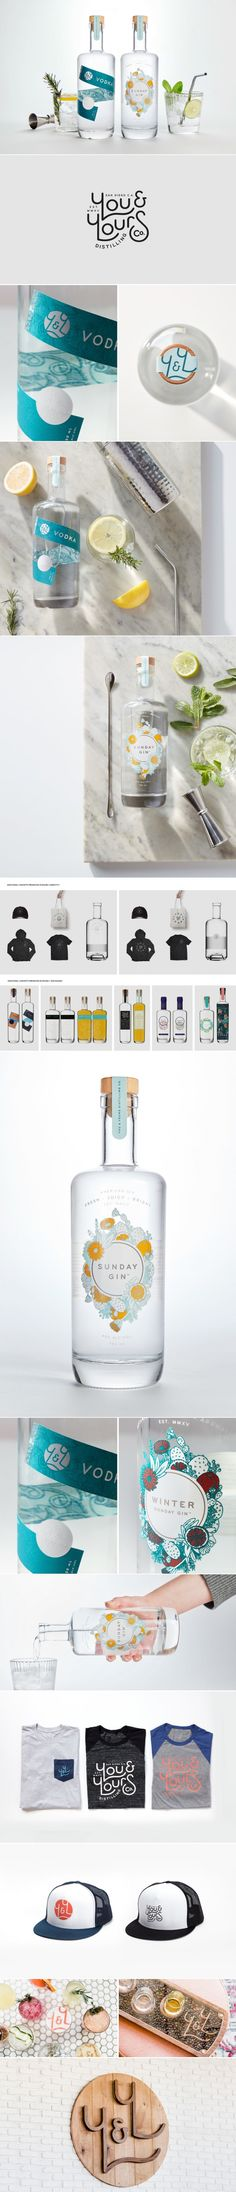 These Spirits From a California Distillery Come With a Fresh Modern Look — The Dieline   Packaging & Branding Design & Innovation News